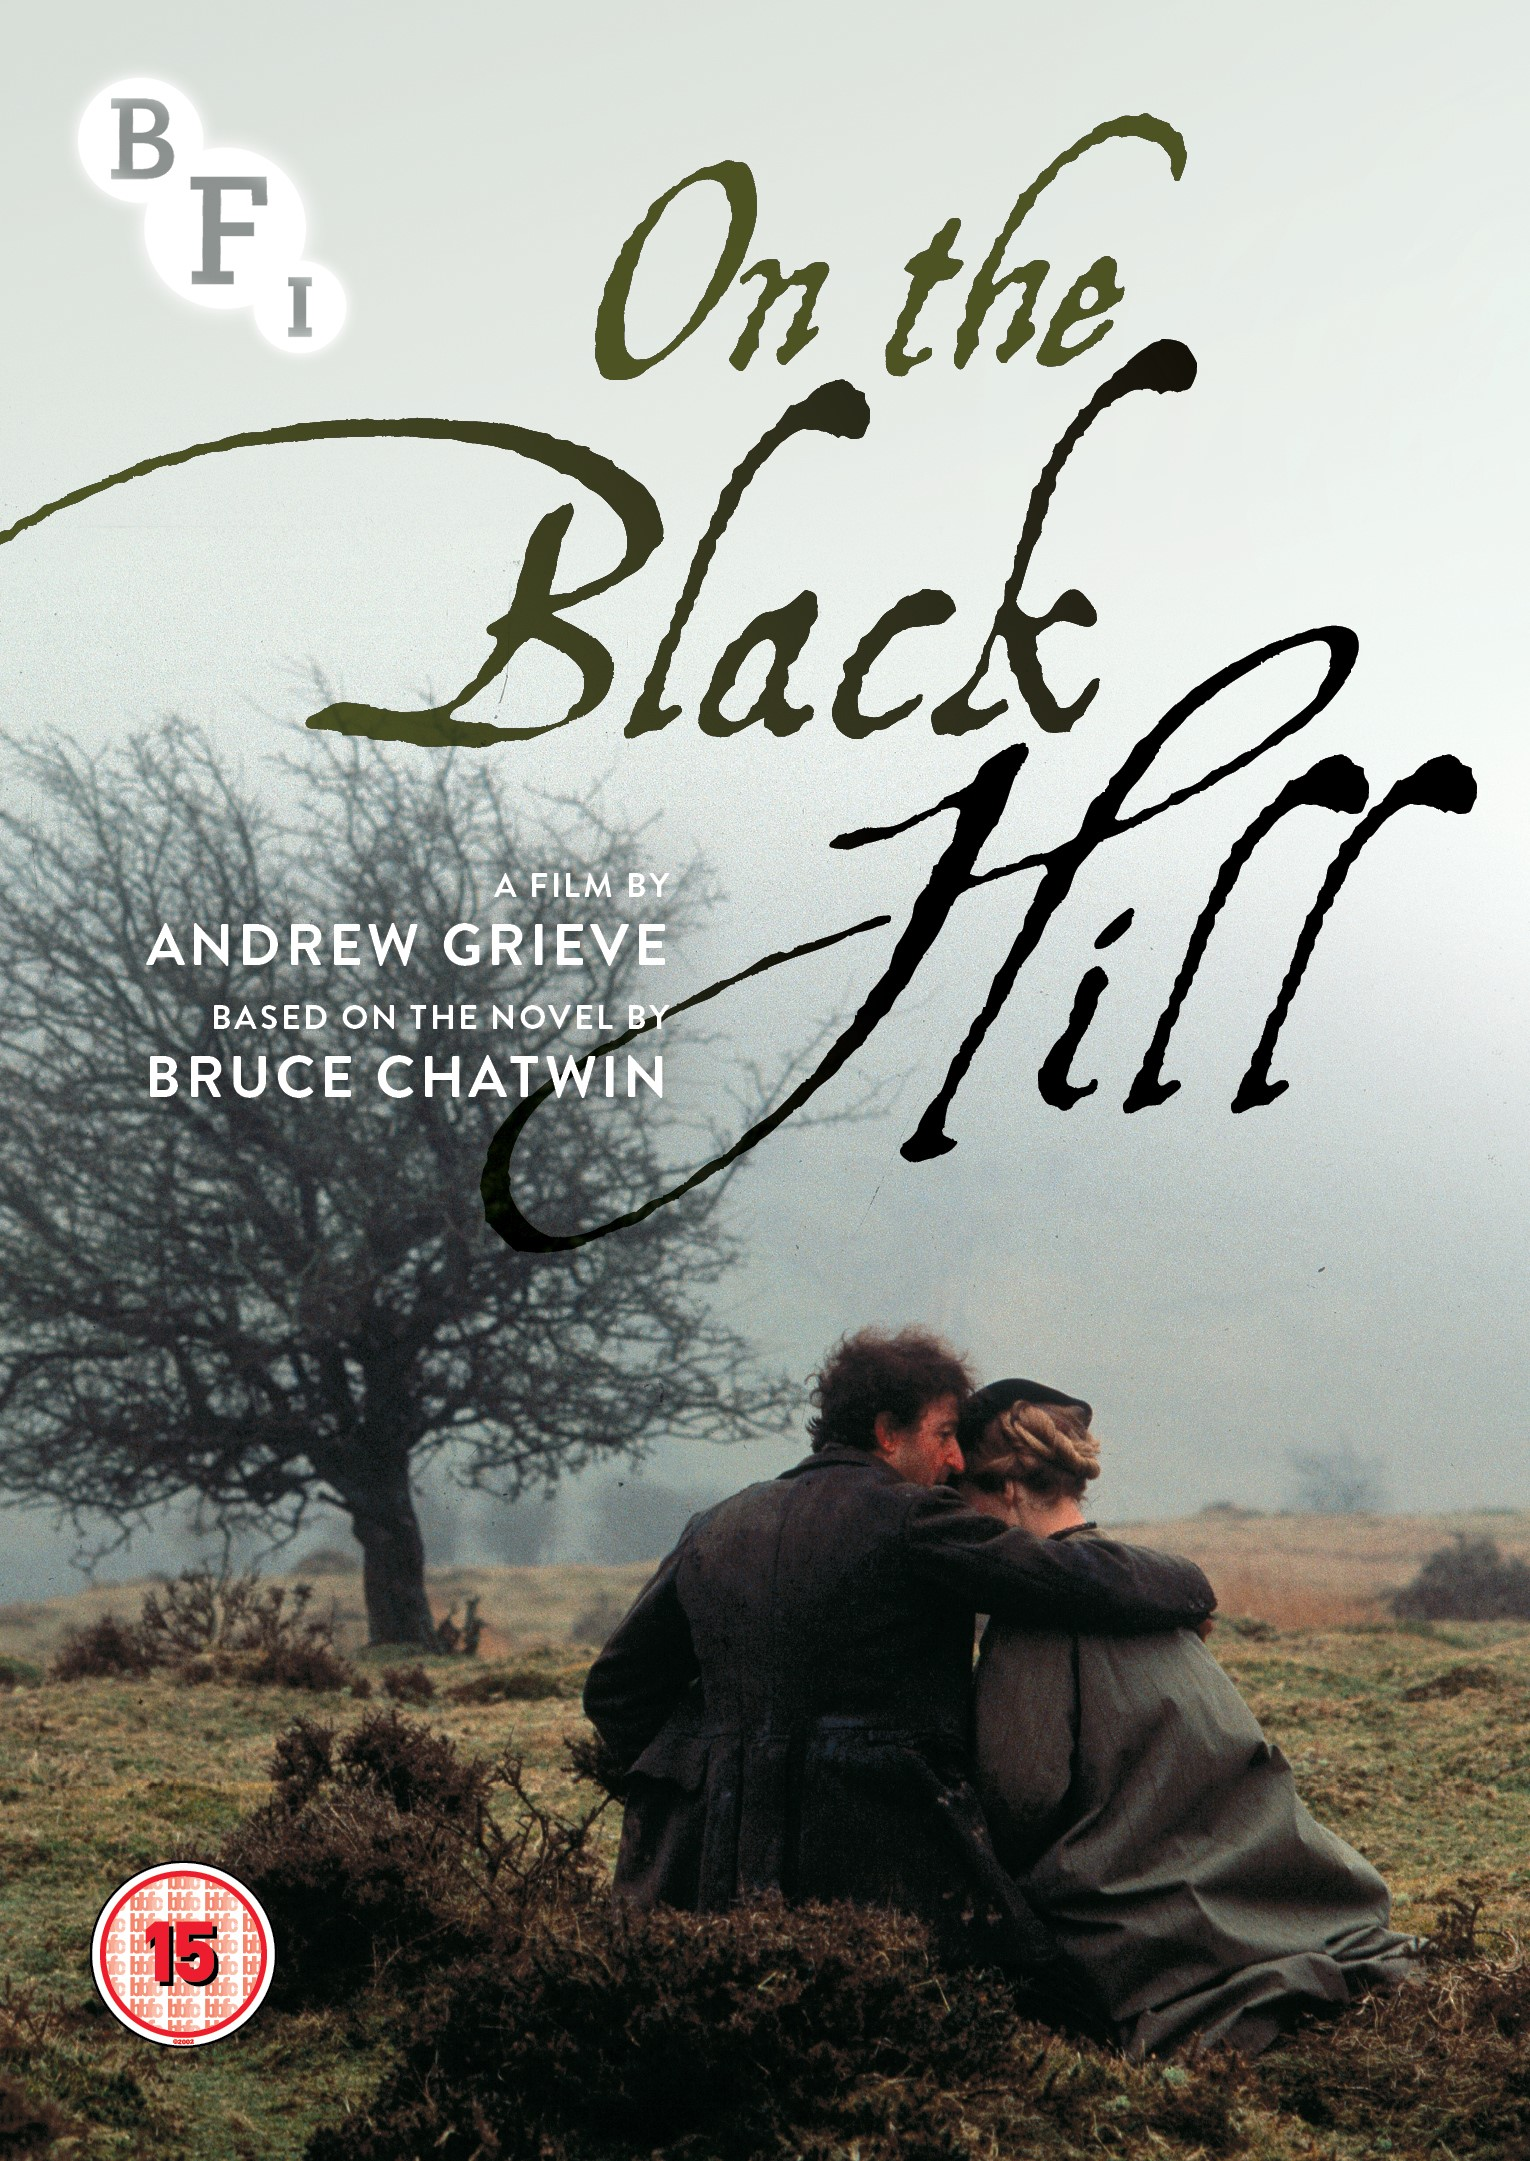 Buy On the Black Hill (Dual Format Edition)